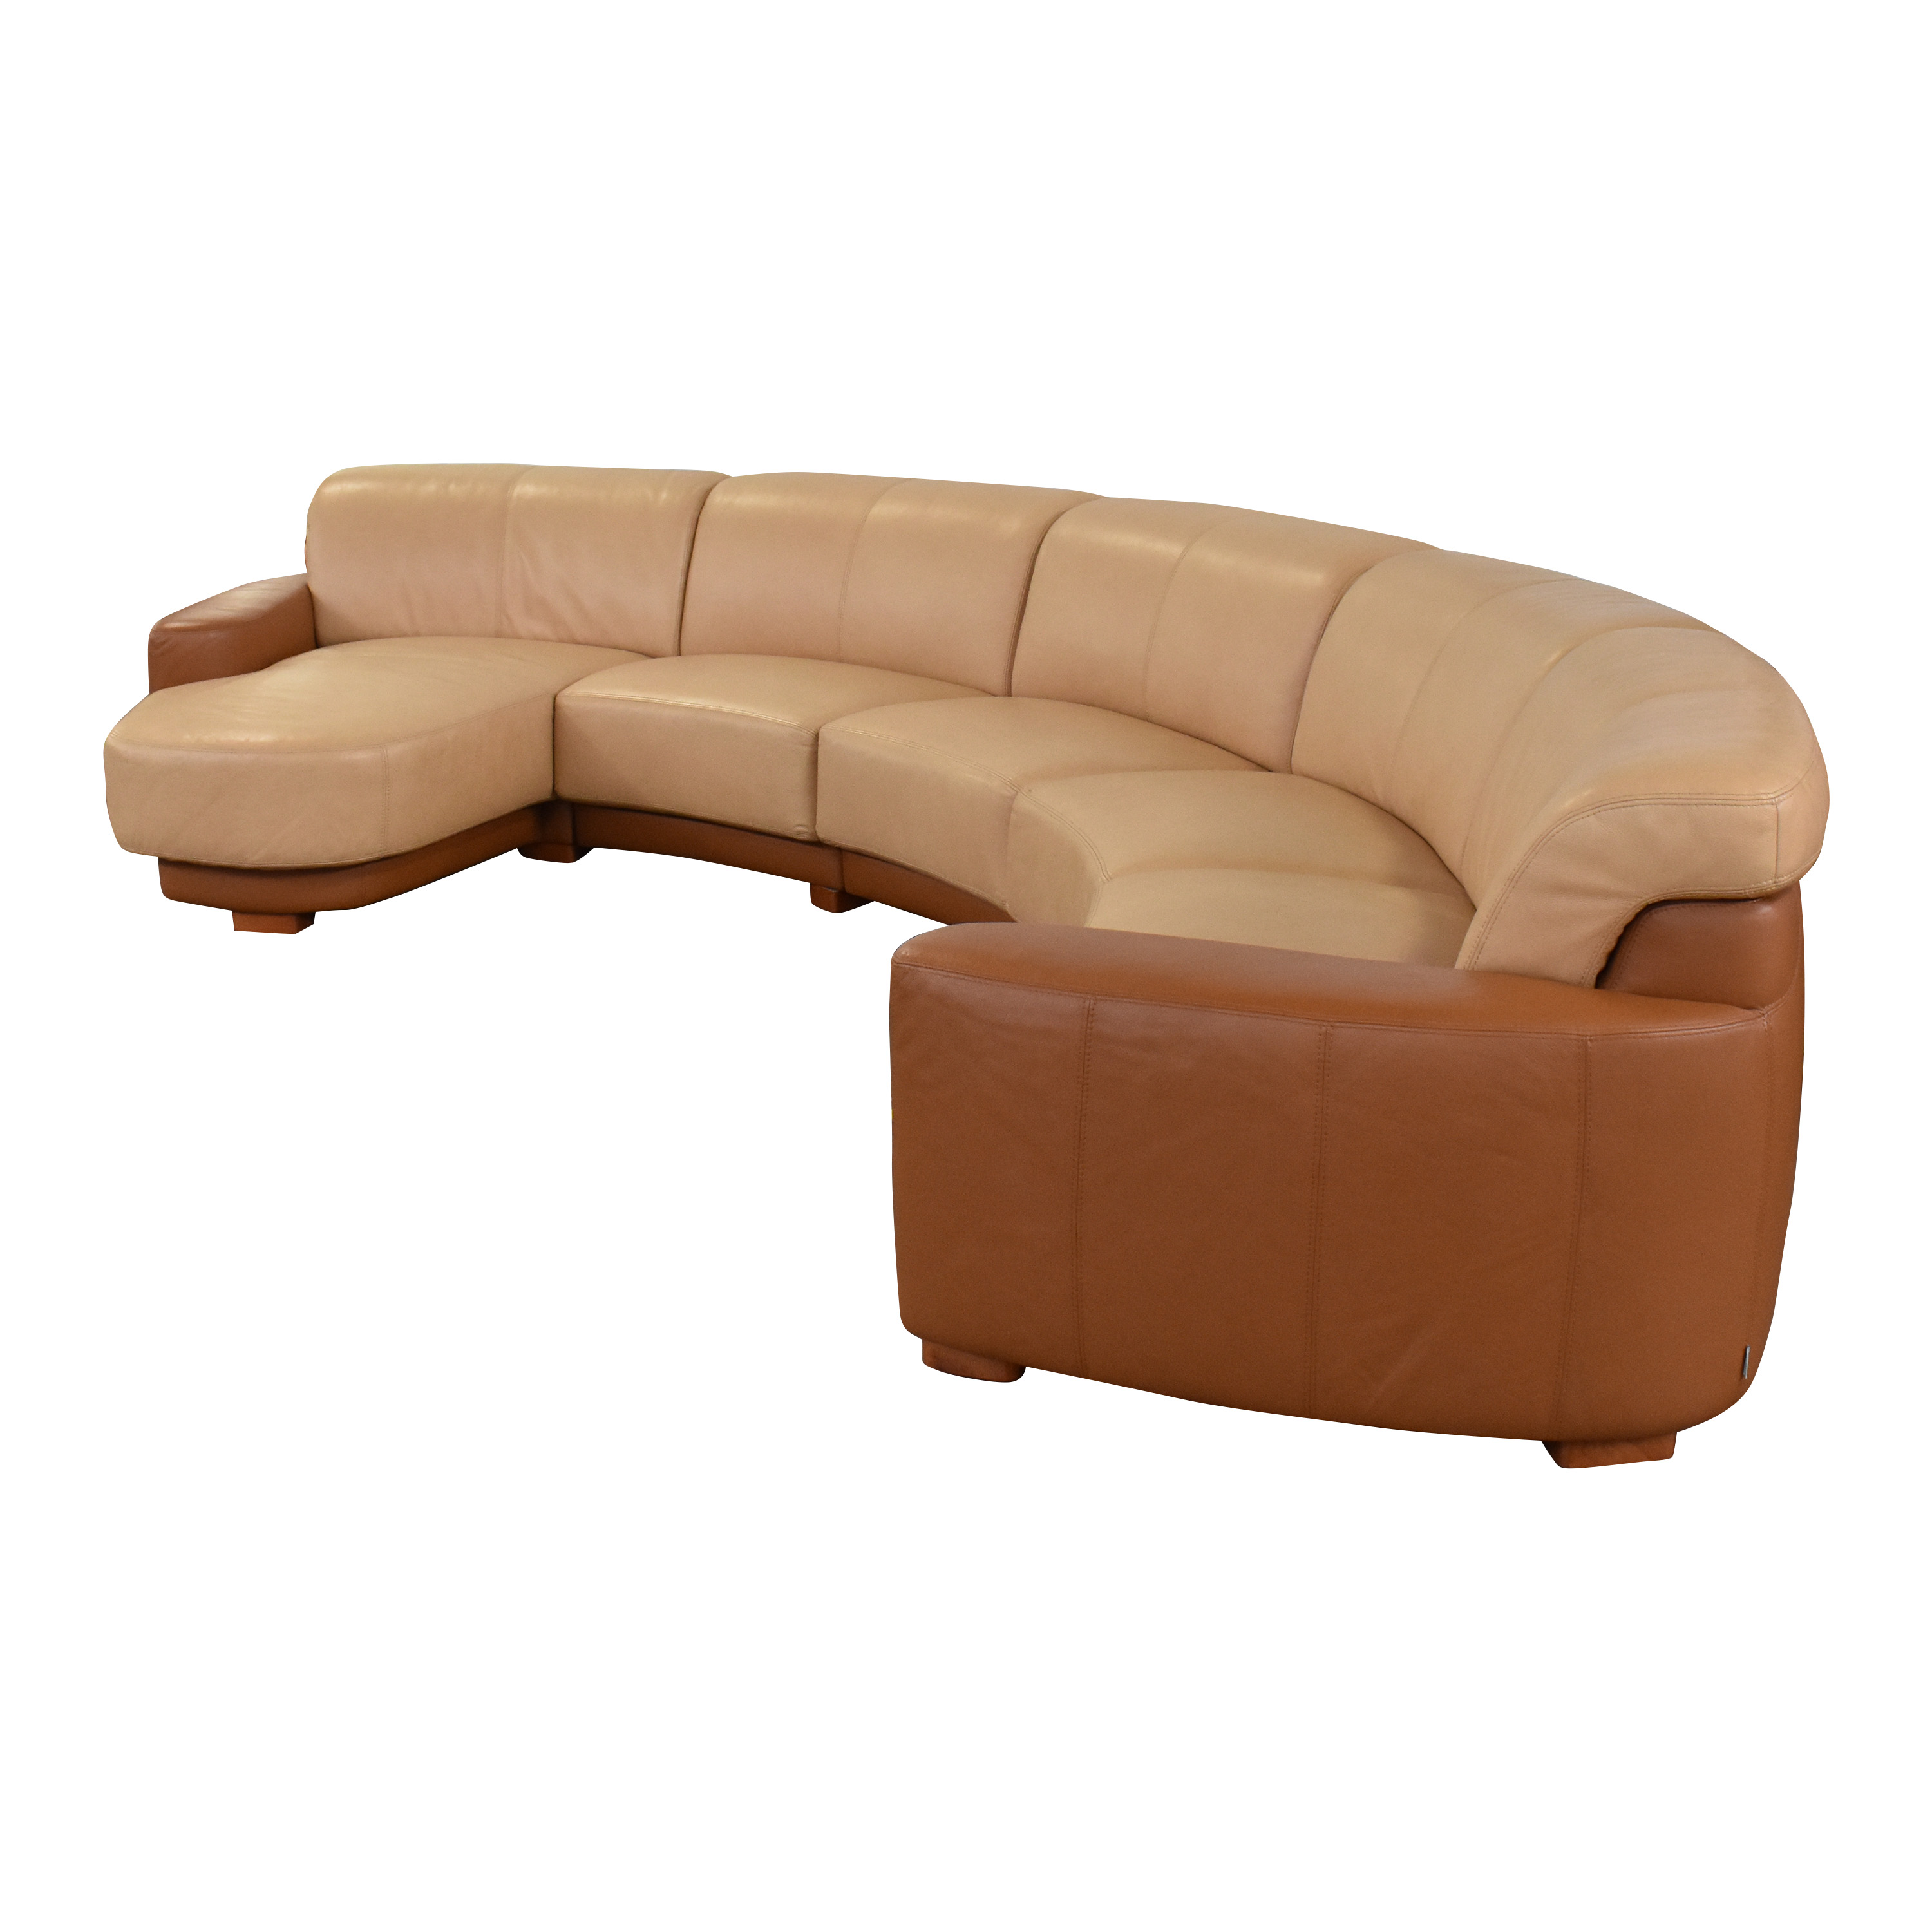 W. Schillig Amber Curved Sectional Sofa W. Schillig